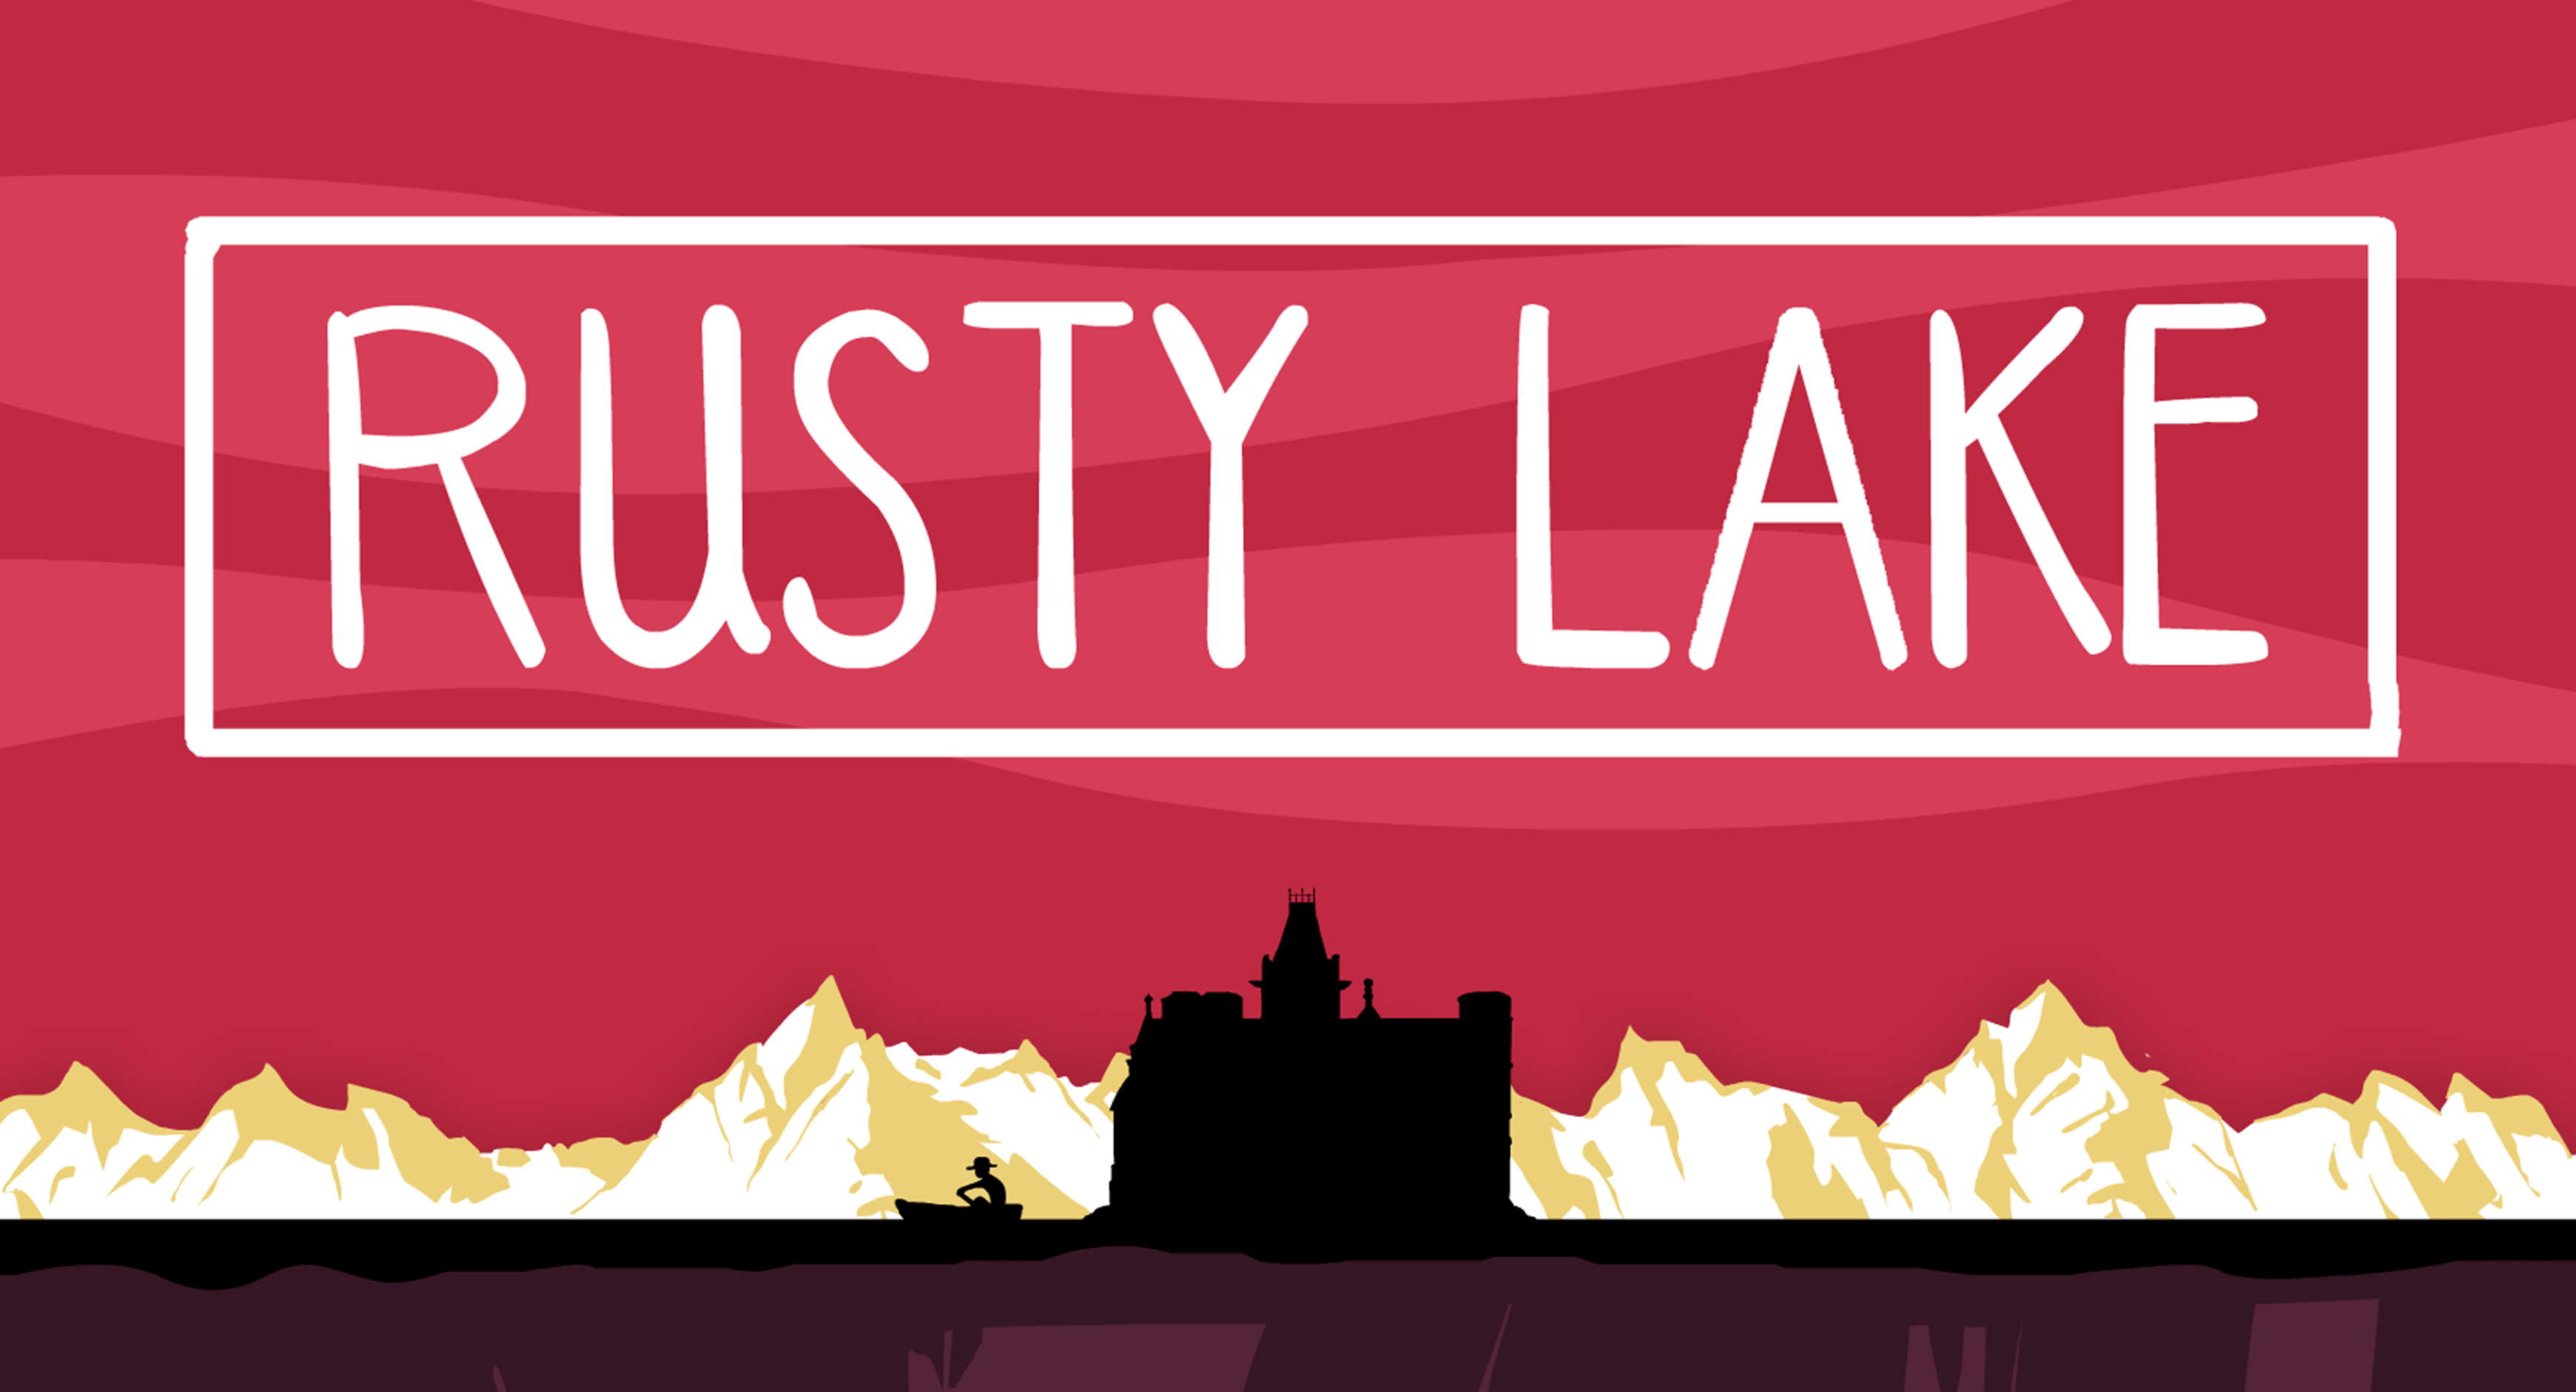 Rusty Lake logo